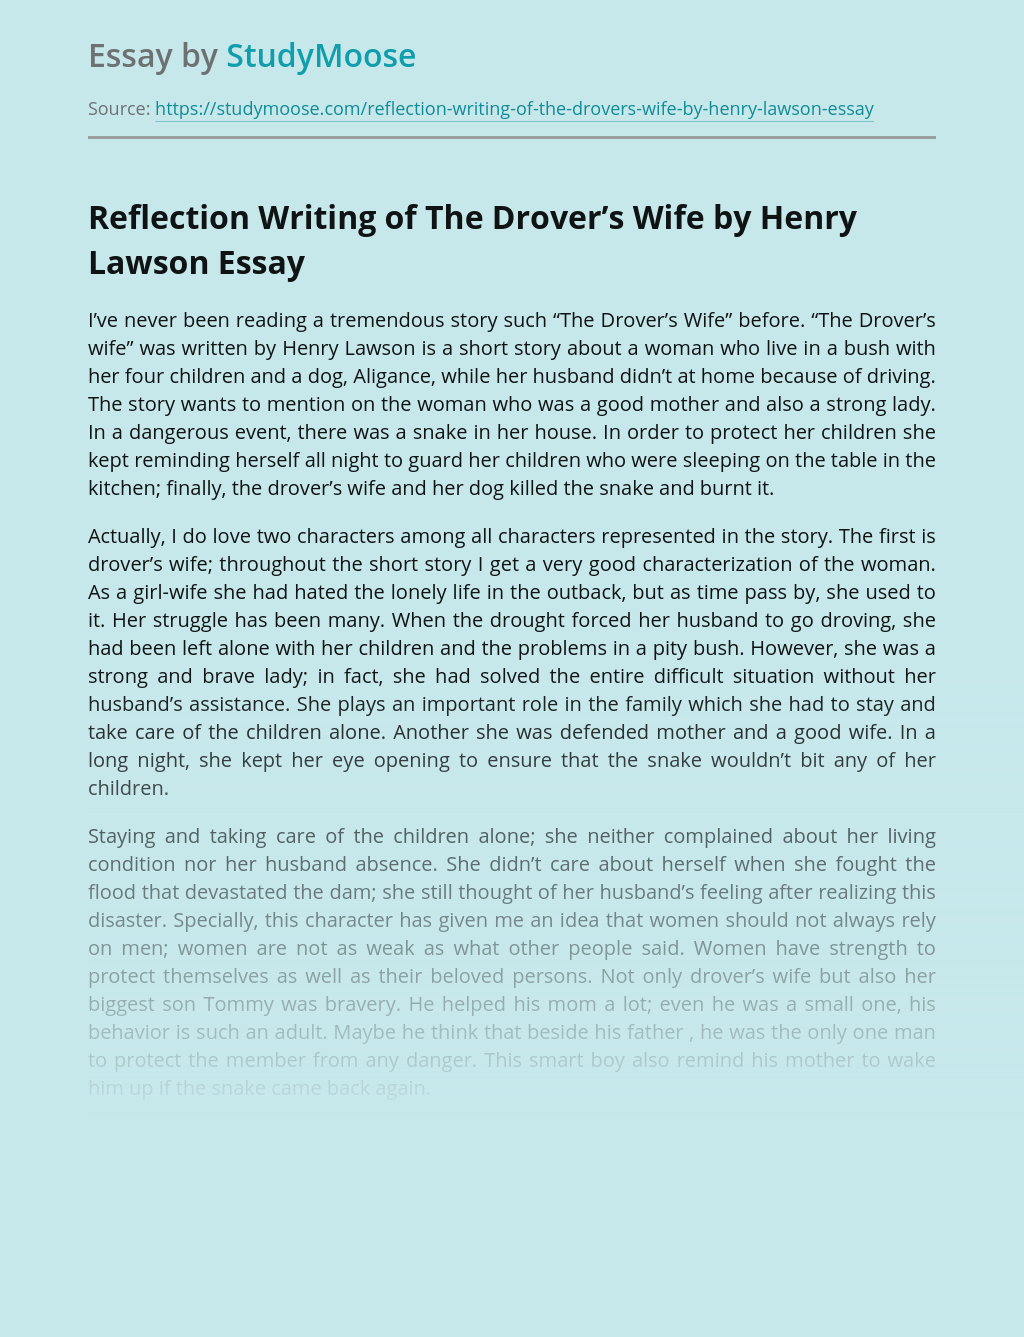 Reflection Writing of The Drover's Wife by Henry Lawson